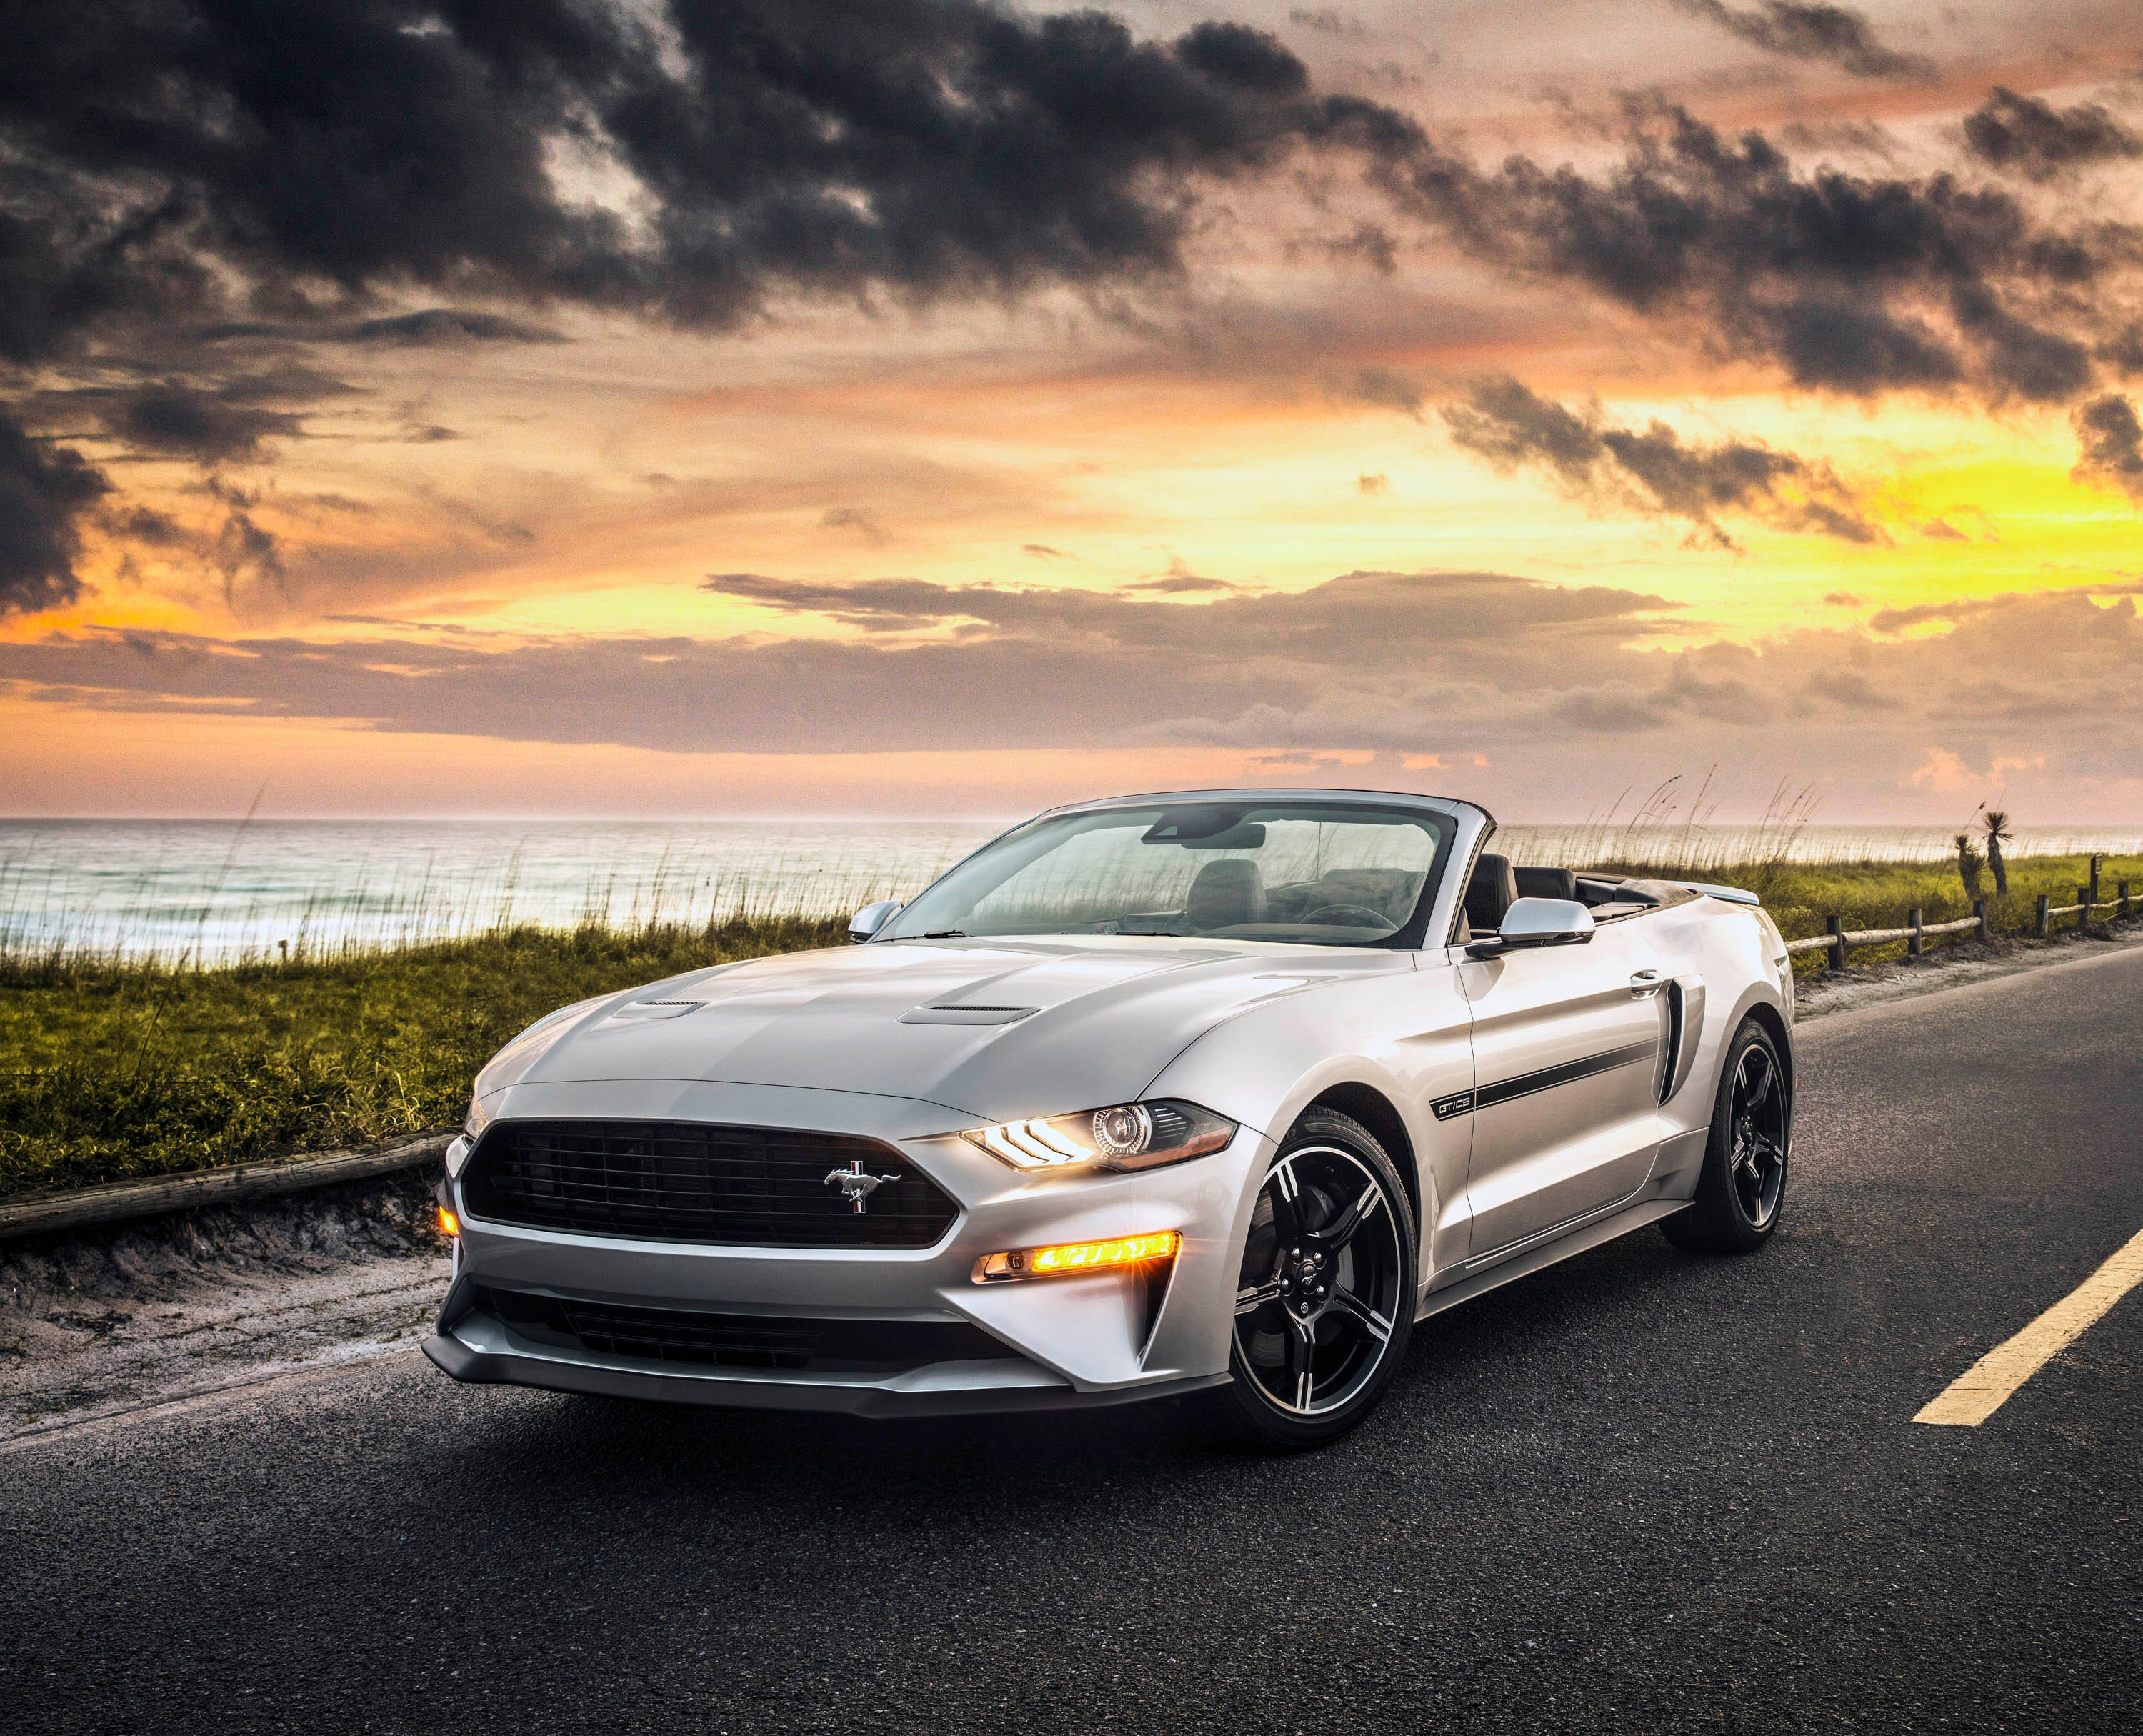 2019 ford mustang gt california special adds muscle to lineup rh usatoday com